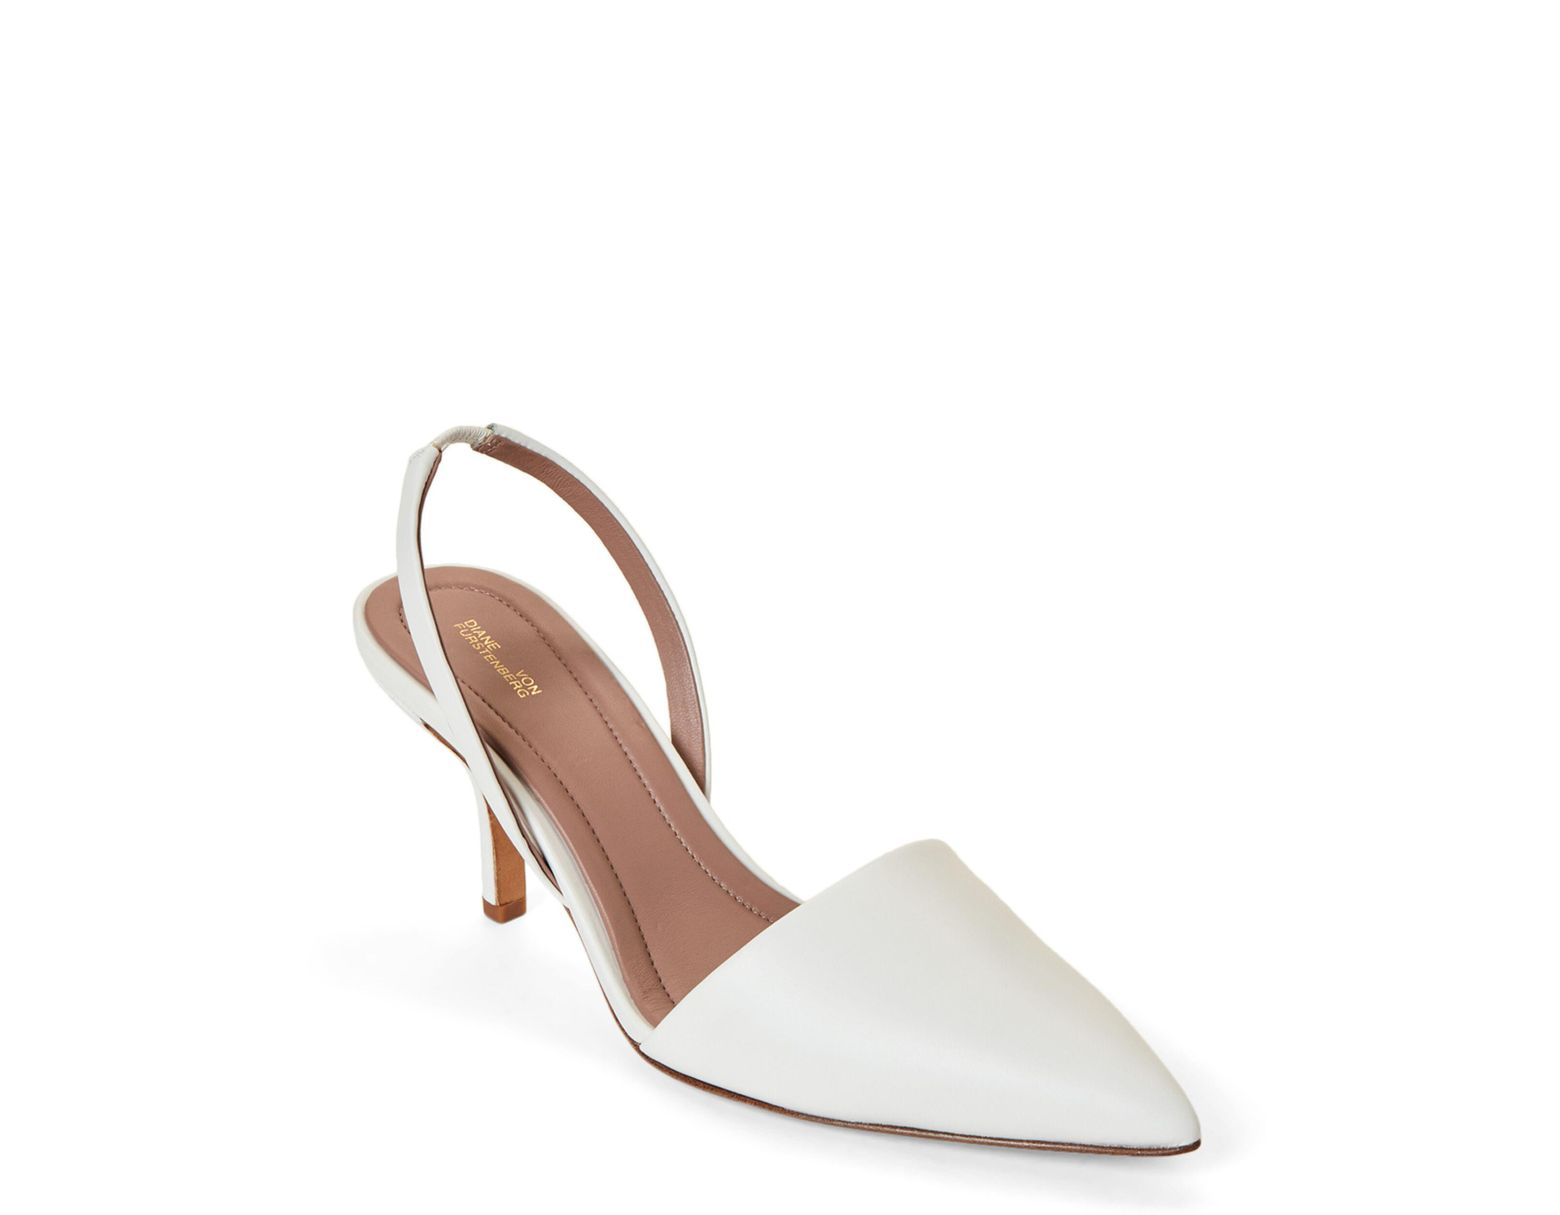 f330ac2244e Diane von Furstenberg Mortelle Slingback Pumps in White - Save 87% - Lyst